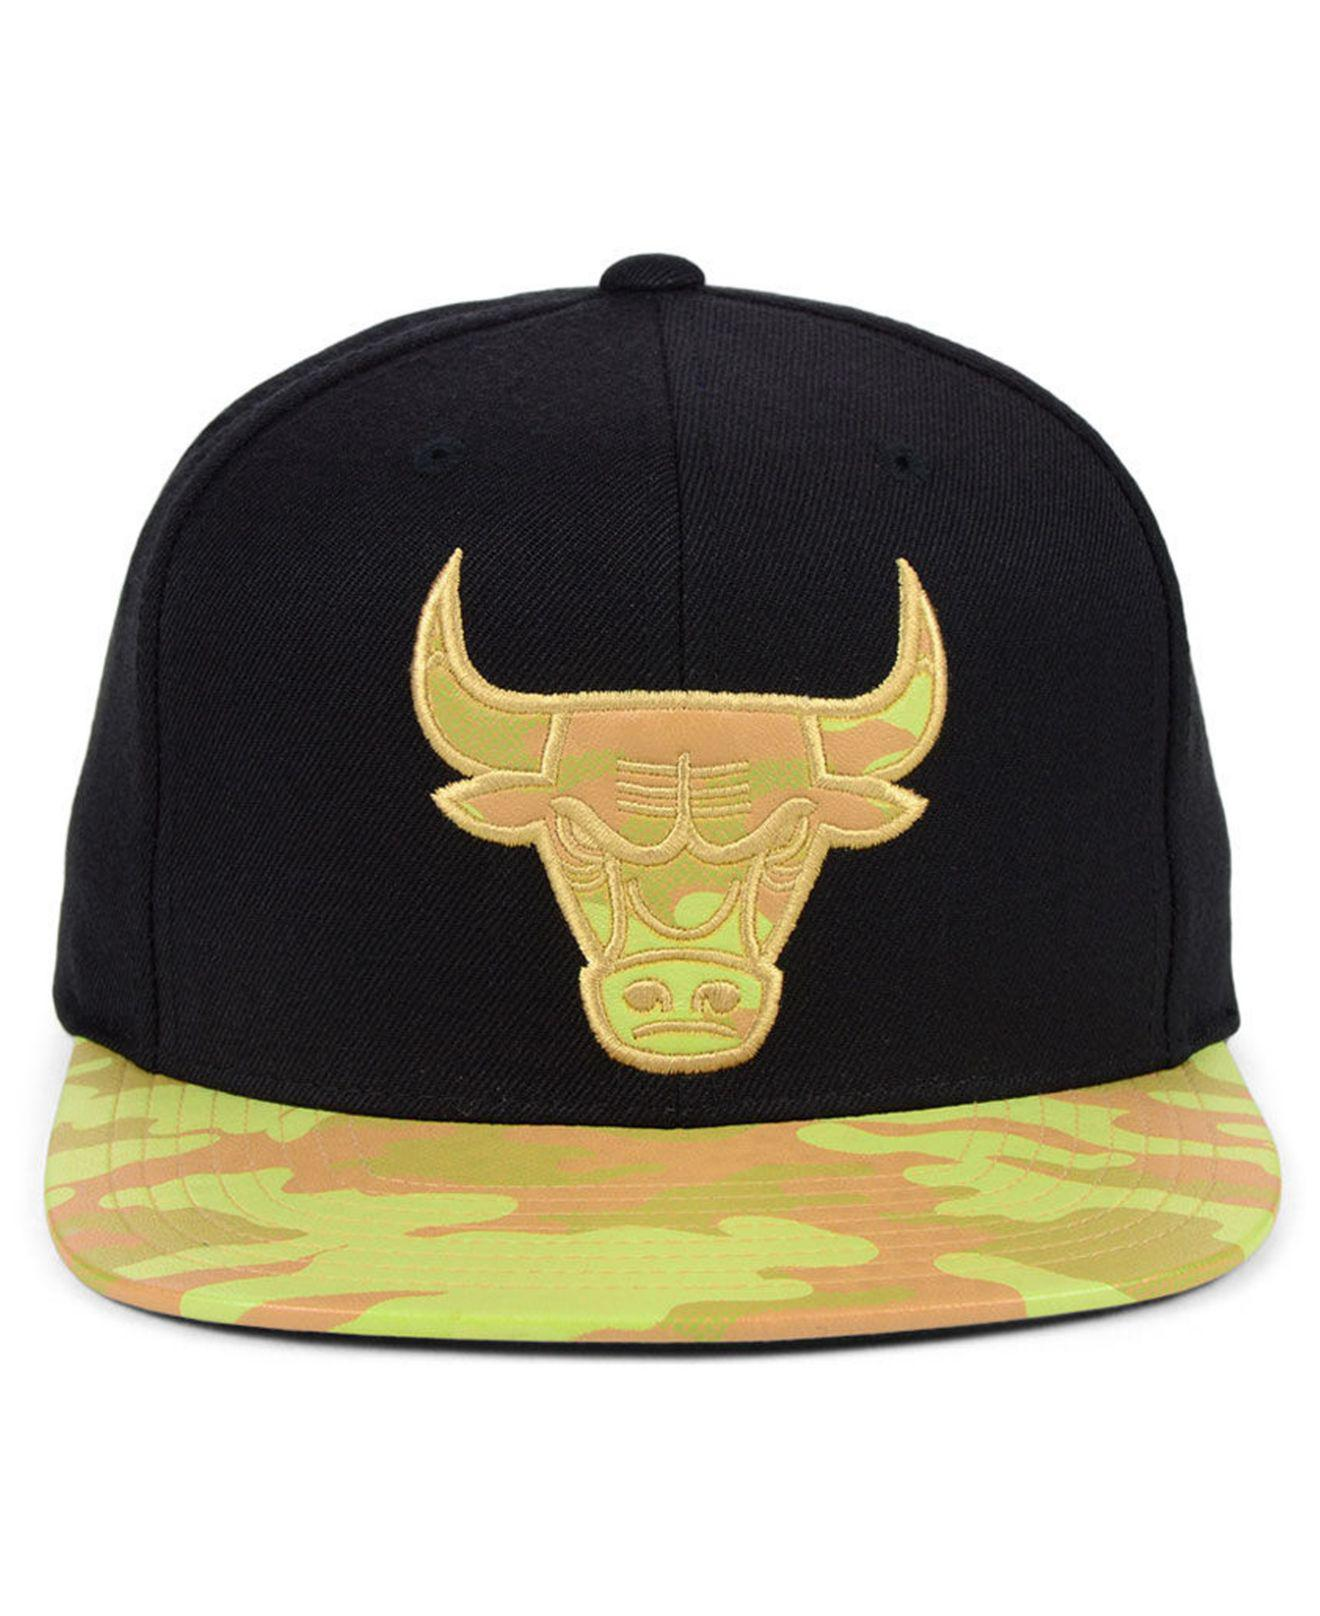 reputable site 3d4ed 90b00 Lyst - Mitchell   Ness Chicago Bulls Natural Camo Snapback Cap in Black for  Men